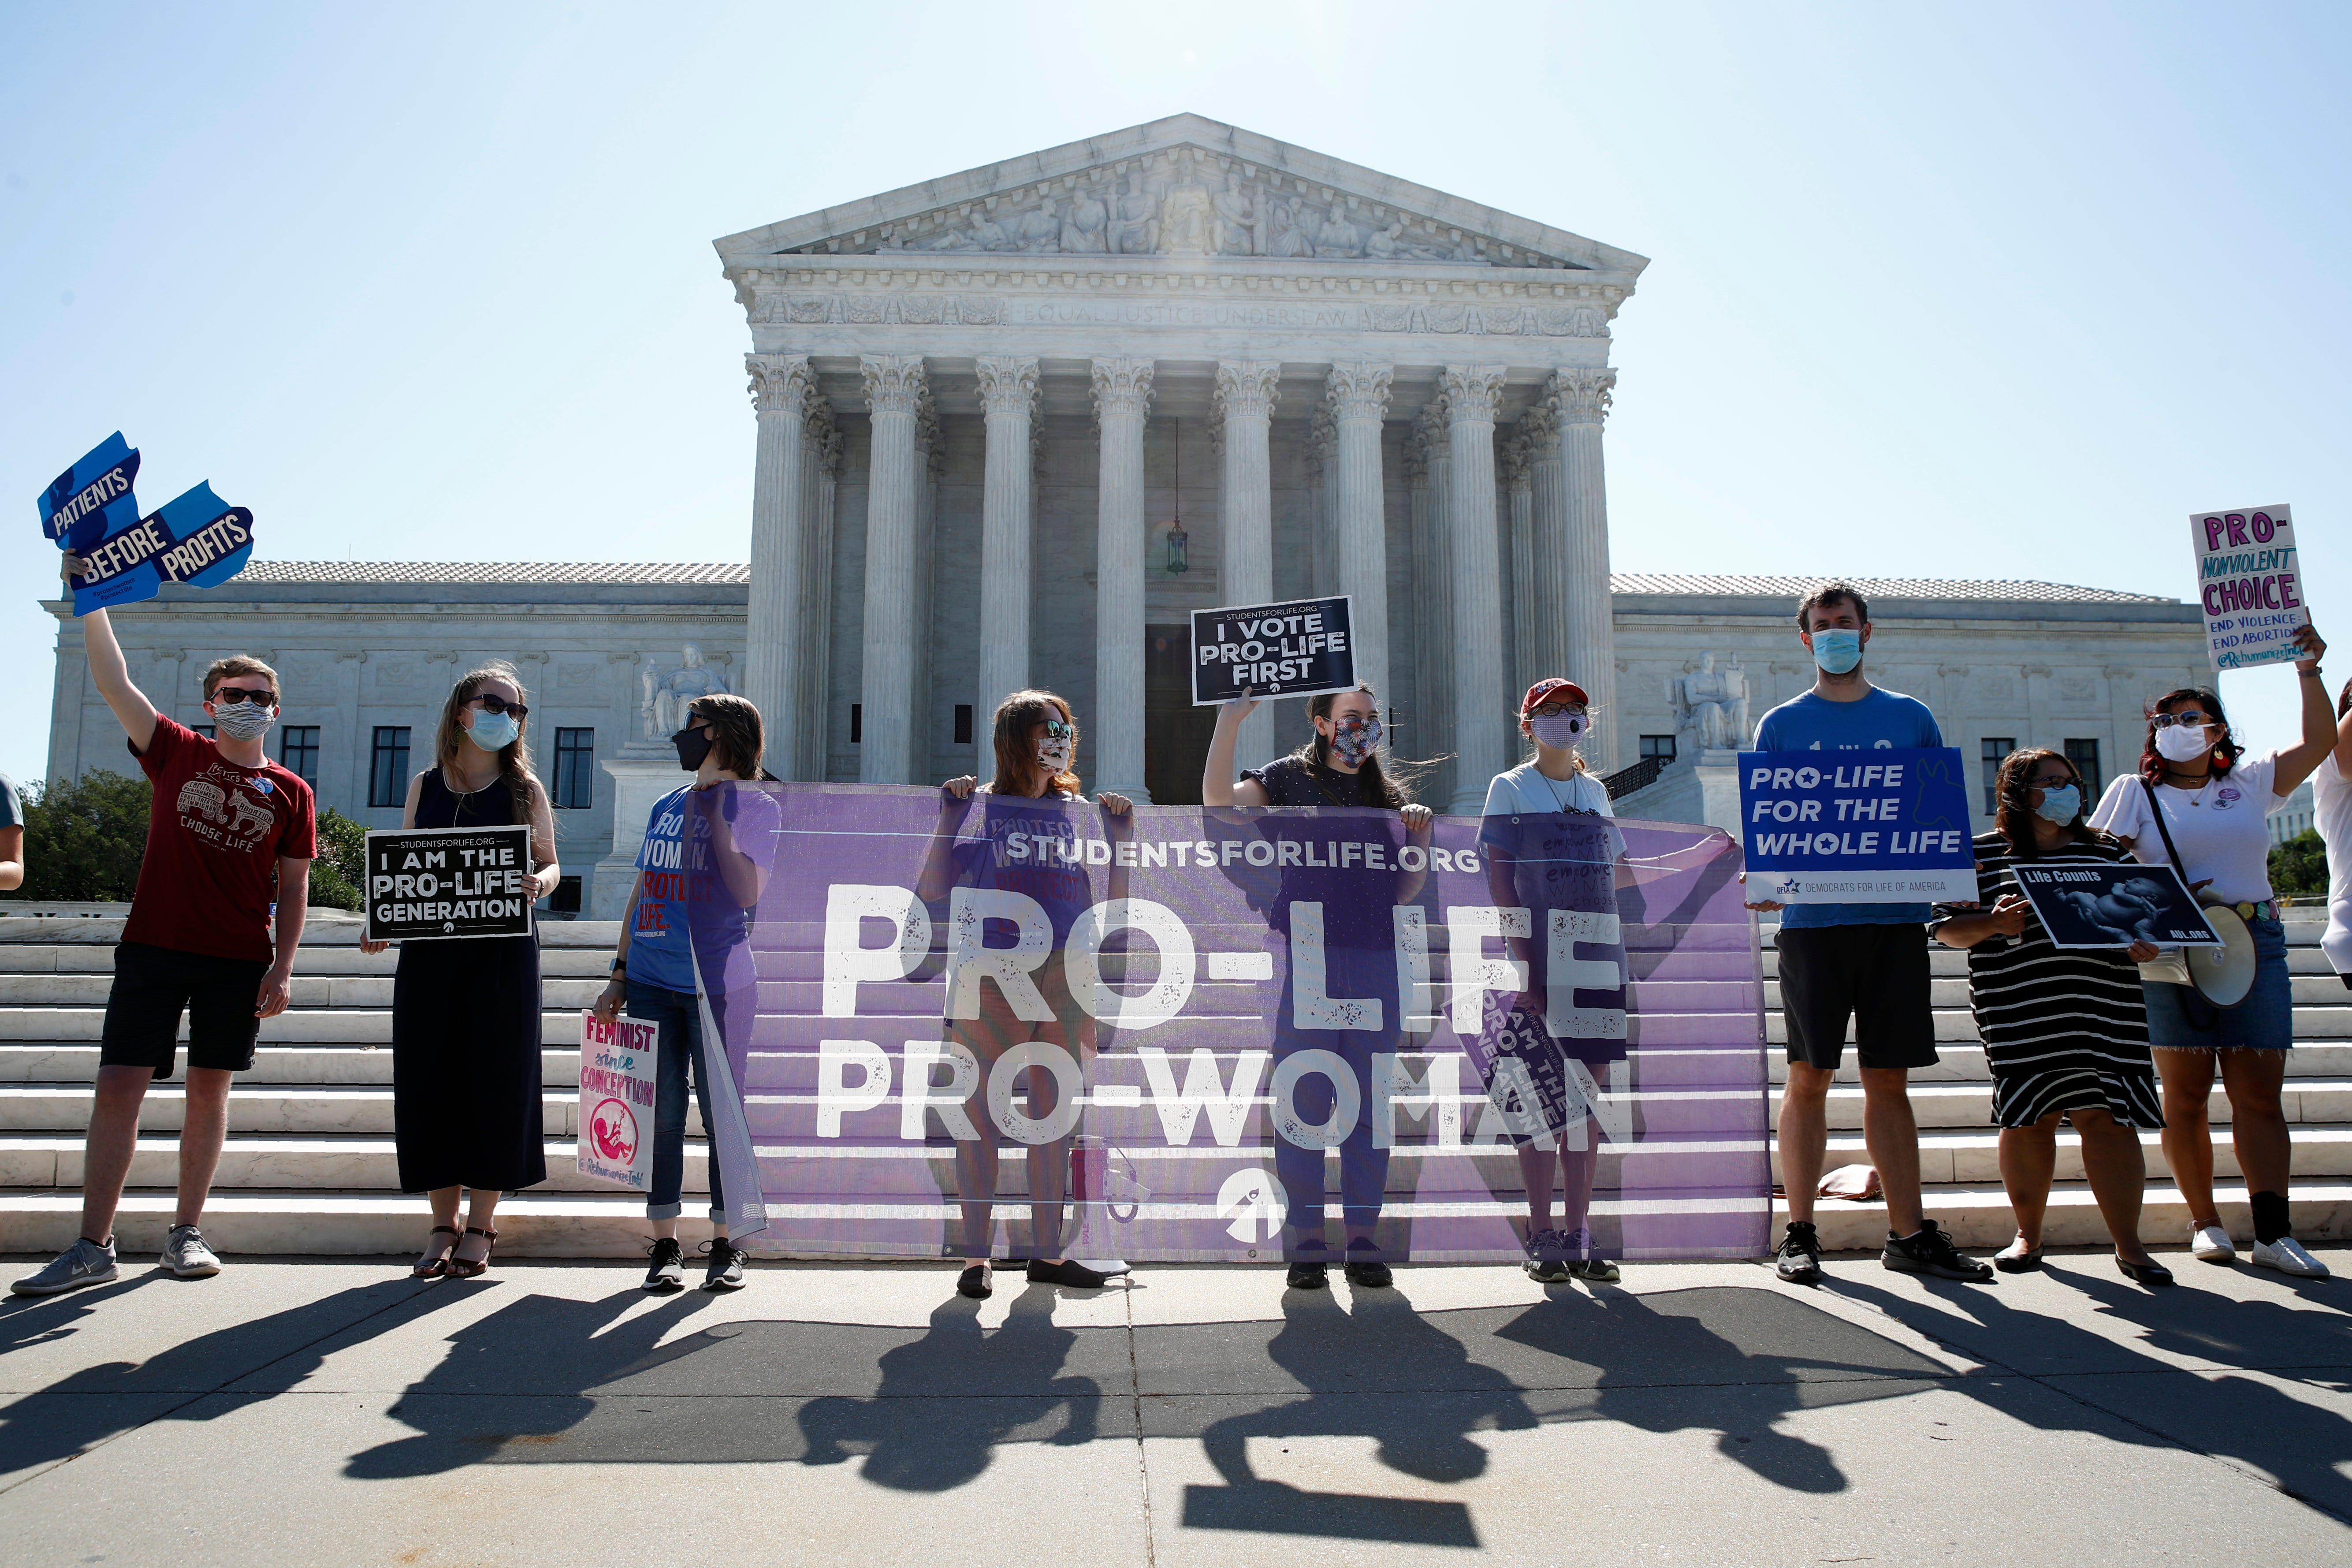 Anti-abortion protesters wait outside the Supreme Court for a decision on a Louisiana case, Russo v. June Medical Services, on June 29, 2020.